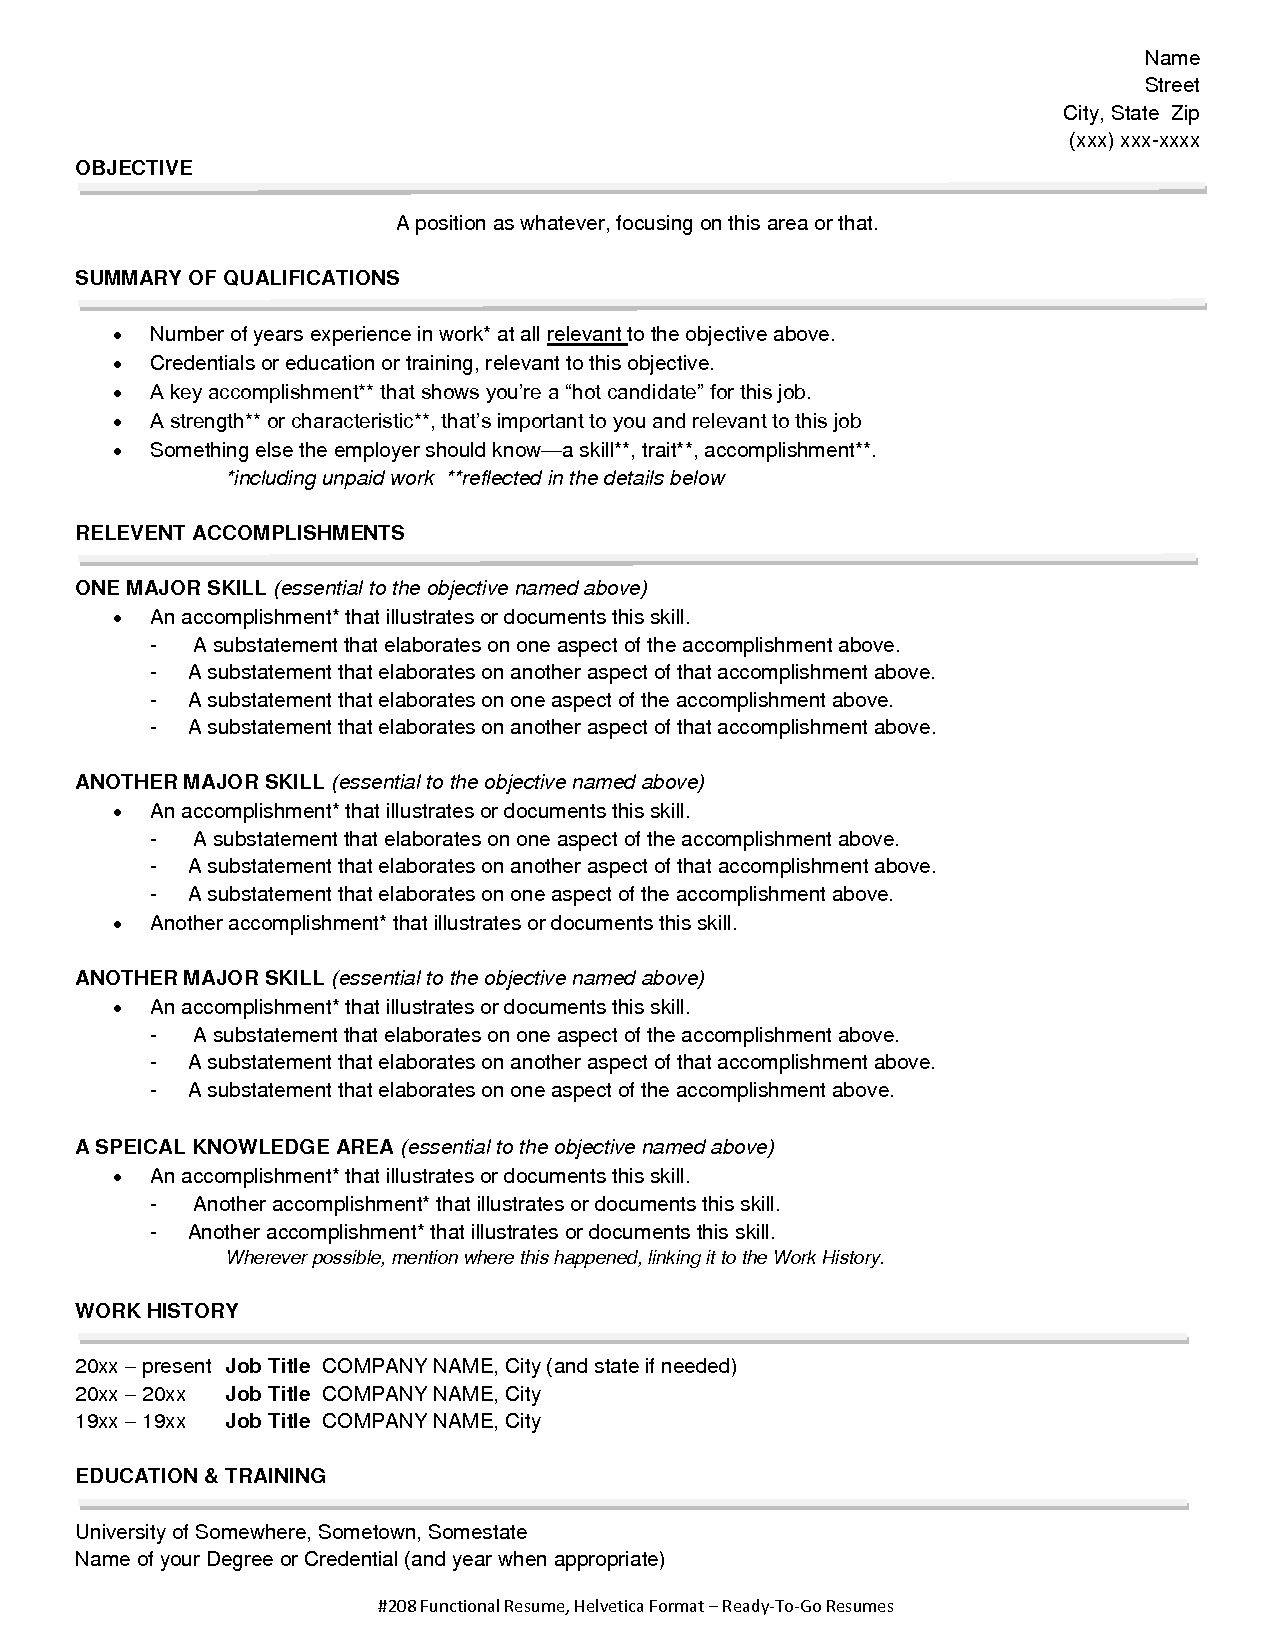 Functional Style Resume Sample | Functional Resume Style 1 ...